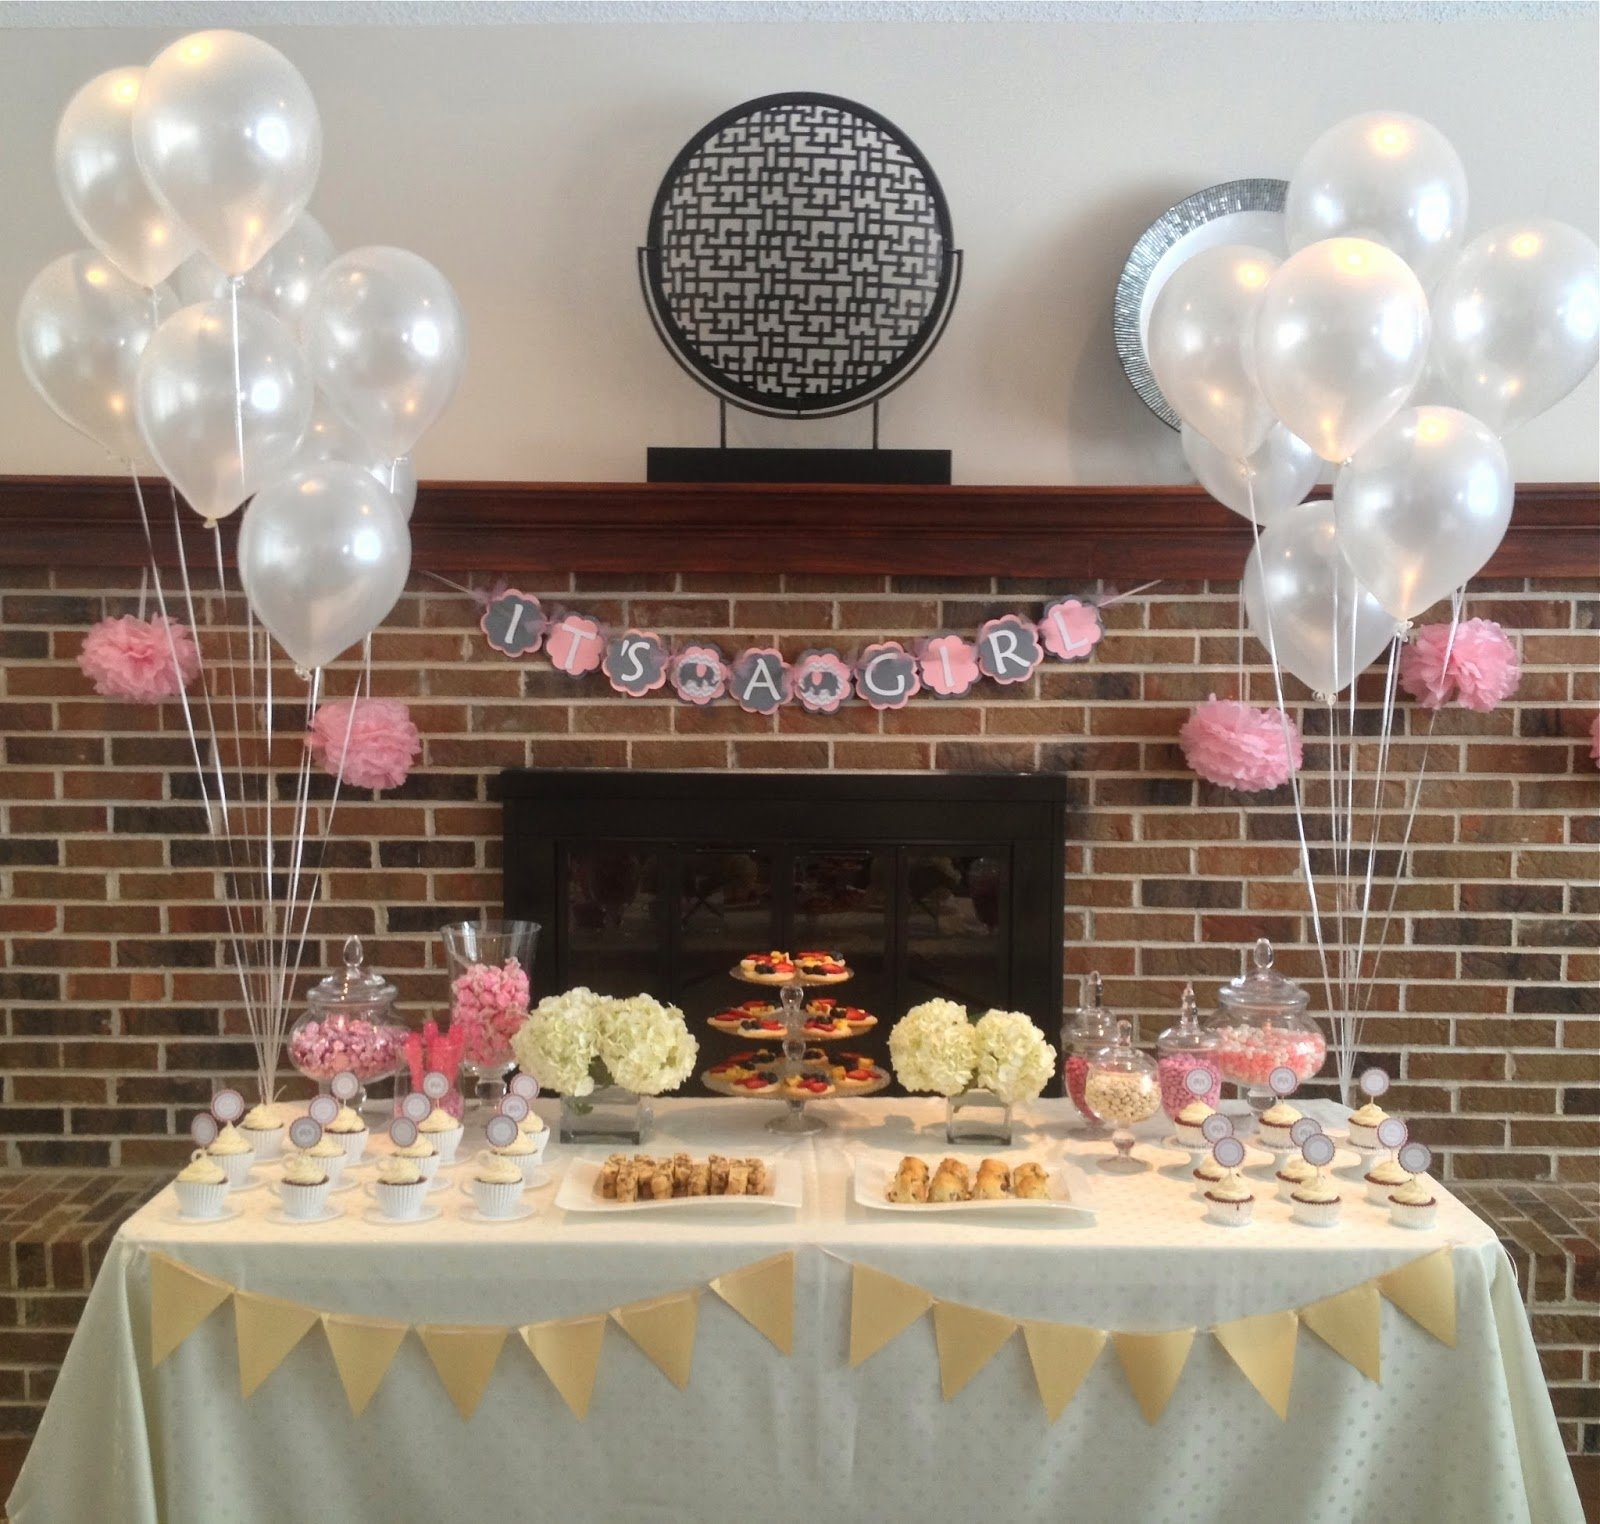 10 Wonderful Baby Shower Tea Party Ideas eat with grace pink and grey tea party themed baby shower 1 2020